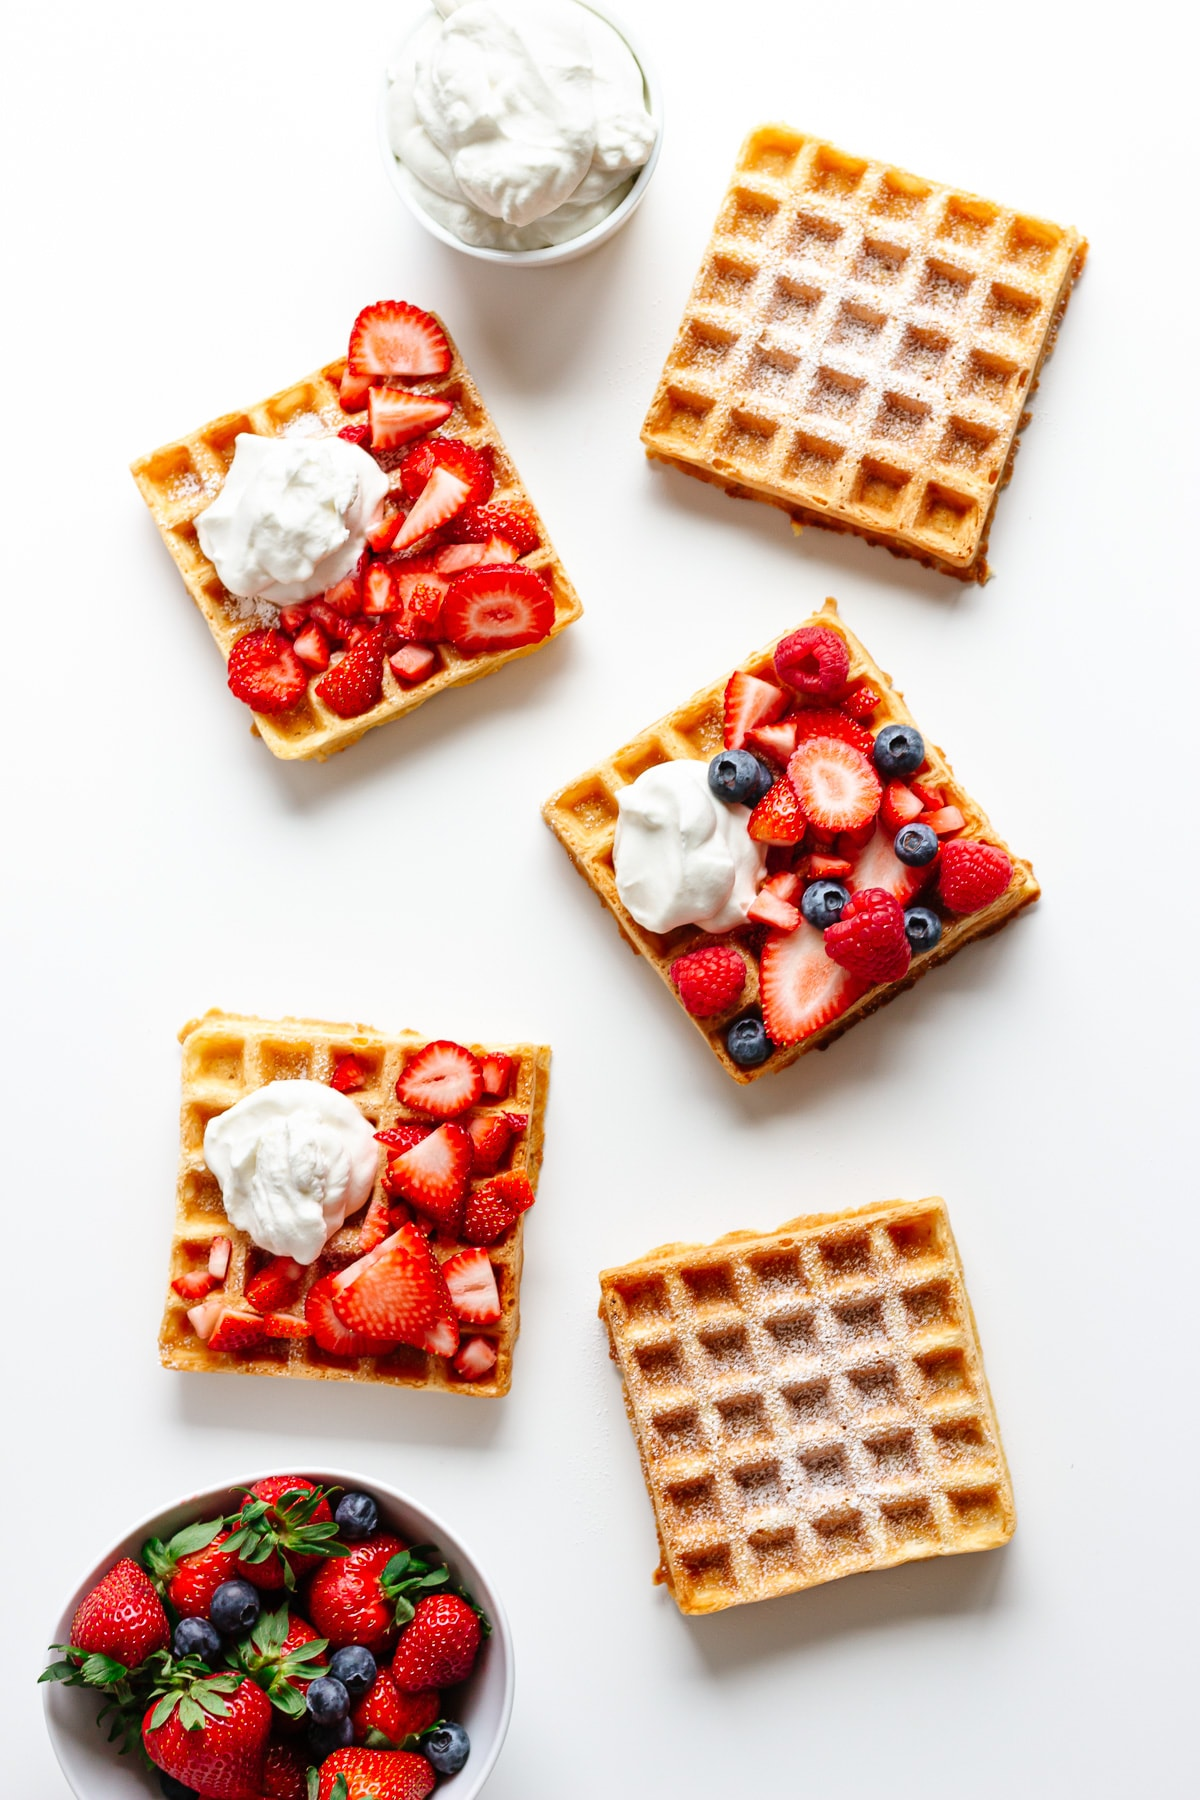 Overhead shot of five square german waffles with different toppings.